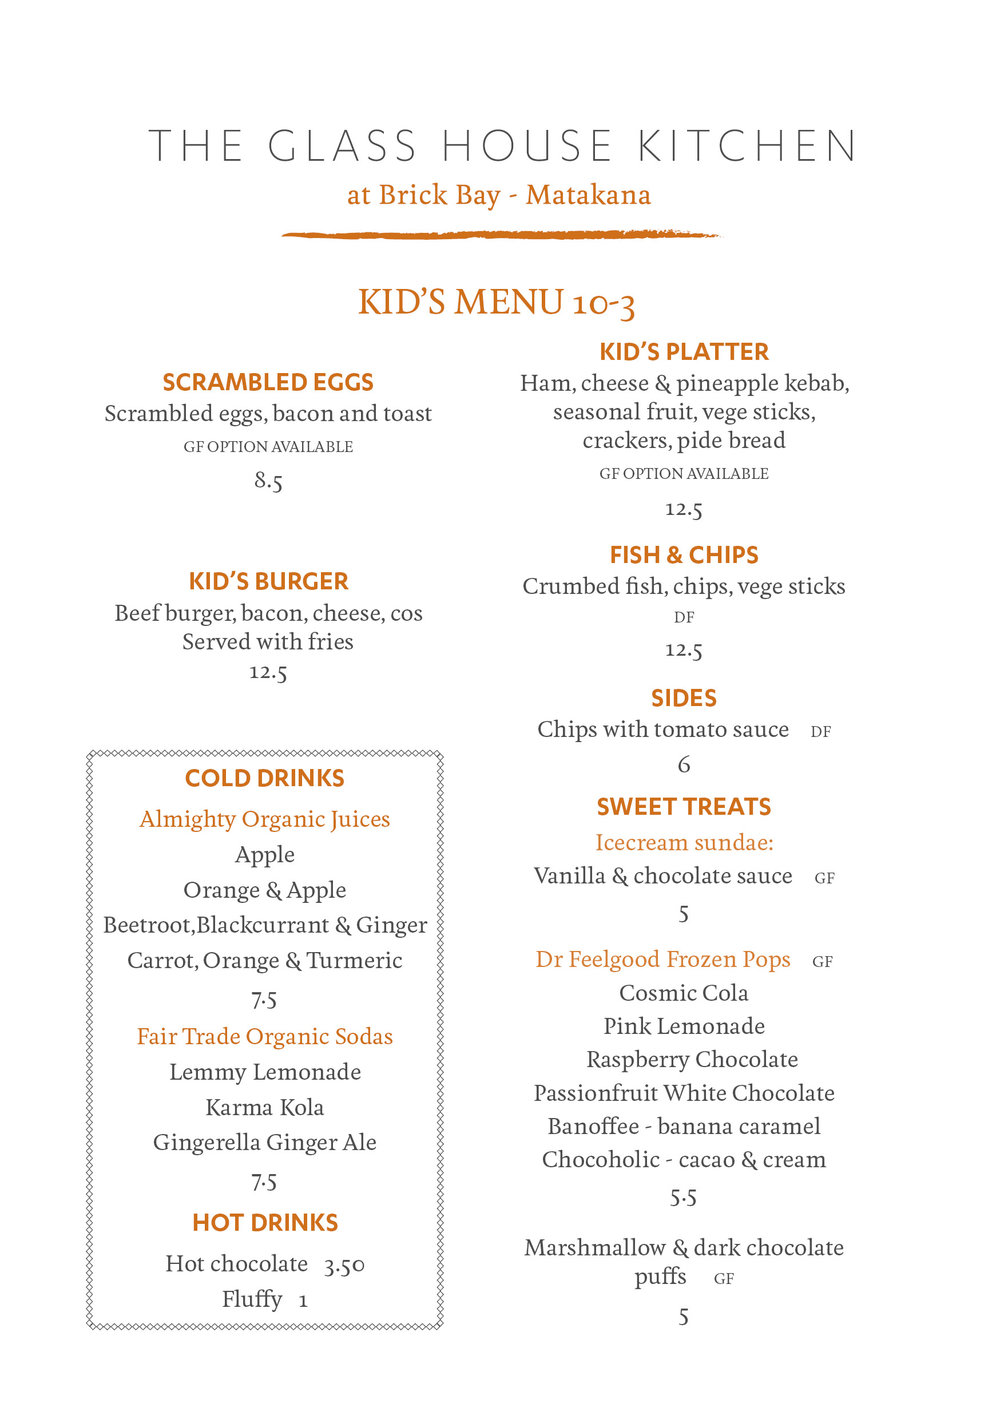 Kids Menu 10-3 20 June 2018.jpg